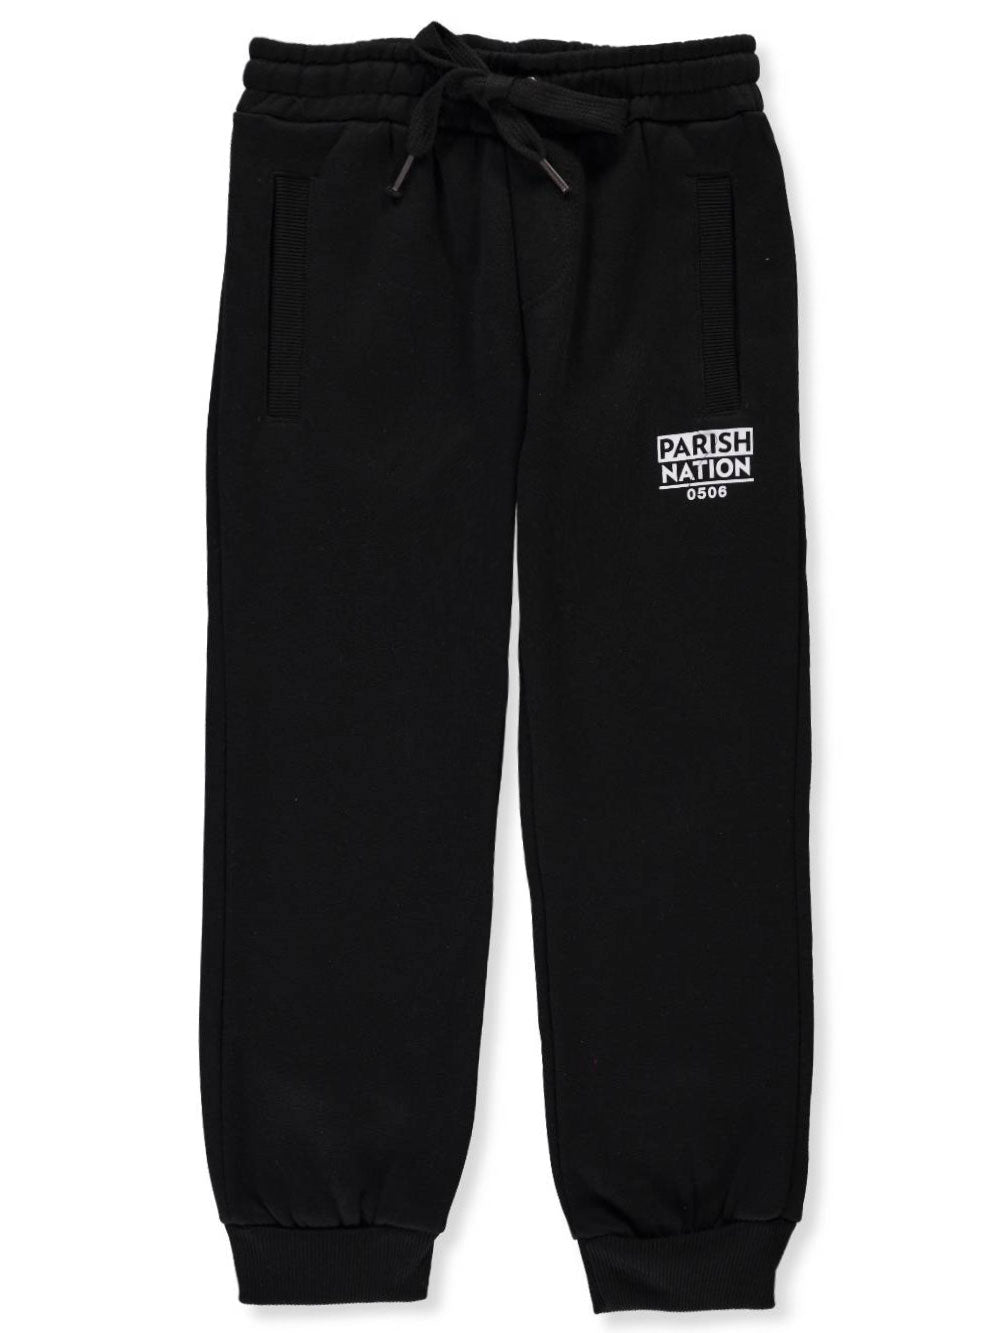 Parish Printed Joggers - FLY GUYZ